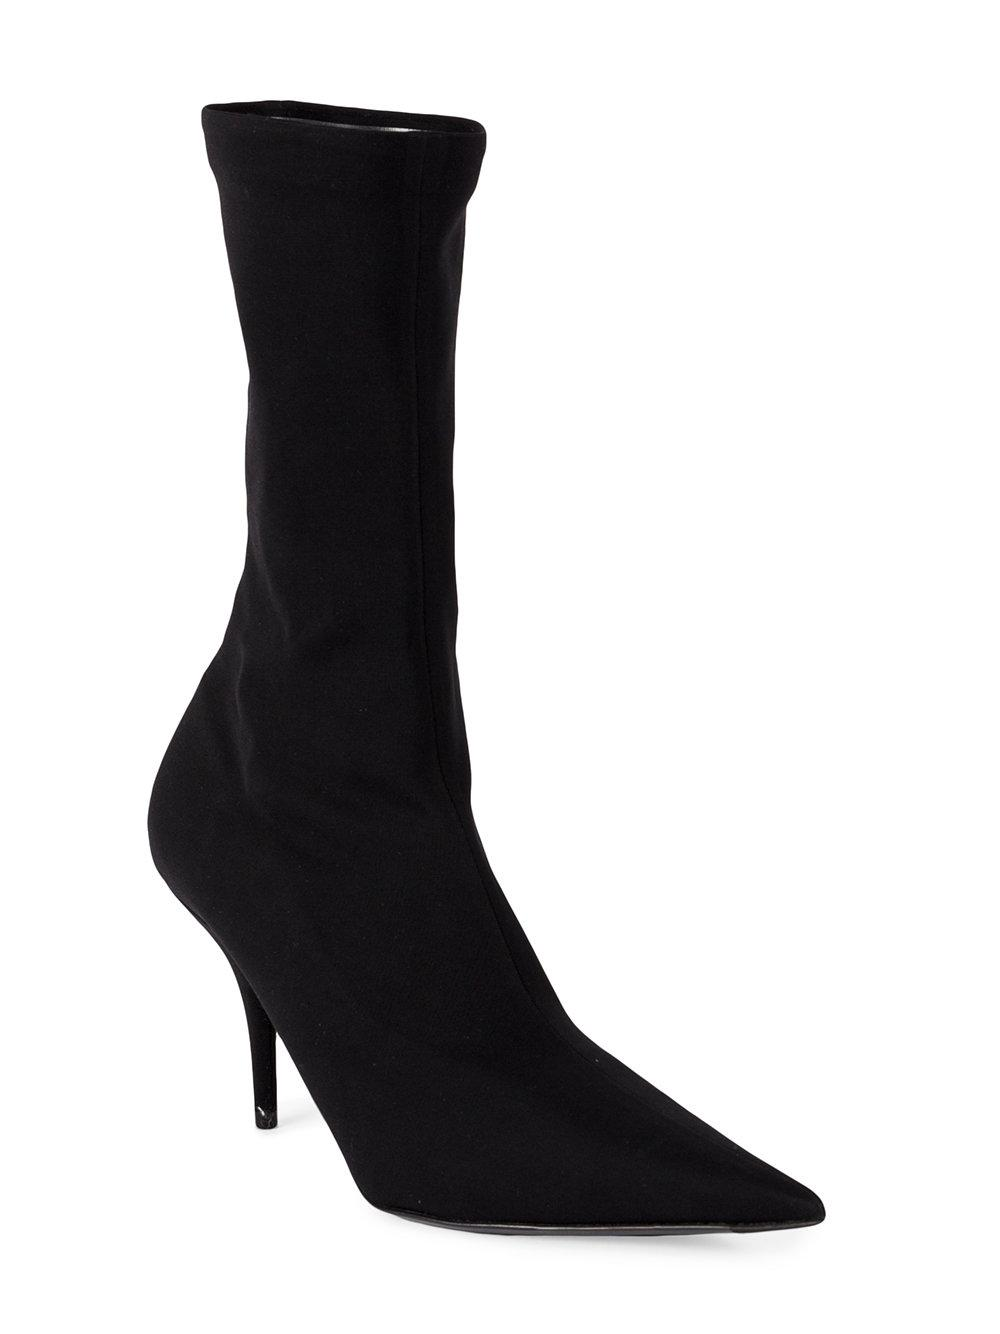 4cbbe6288c60 Balenciaga Knife Ankle Boots in Black - Save 6.417112299465245% - Lyst